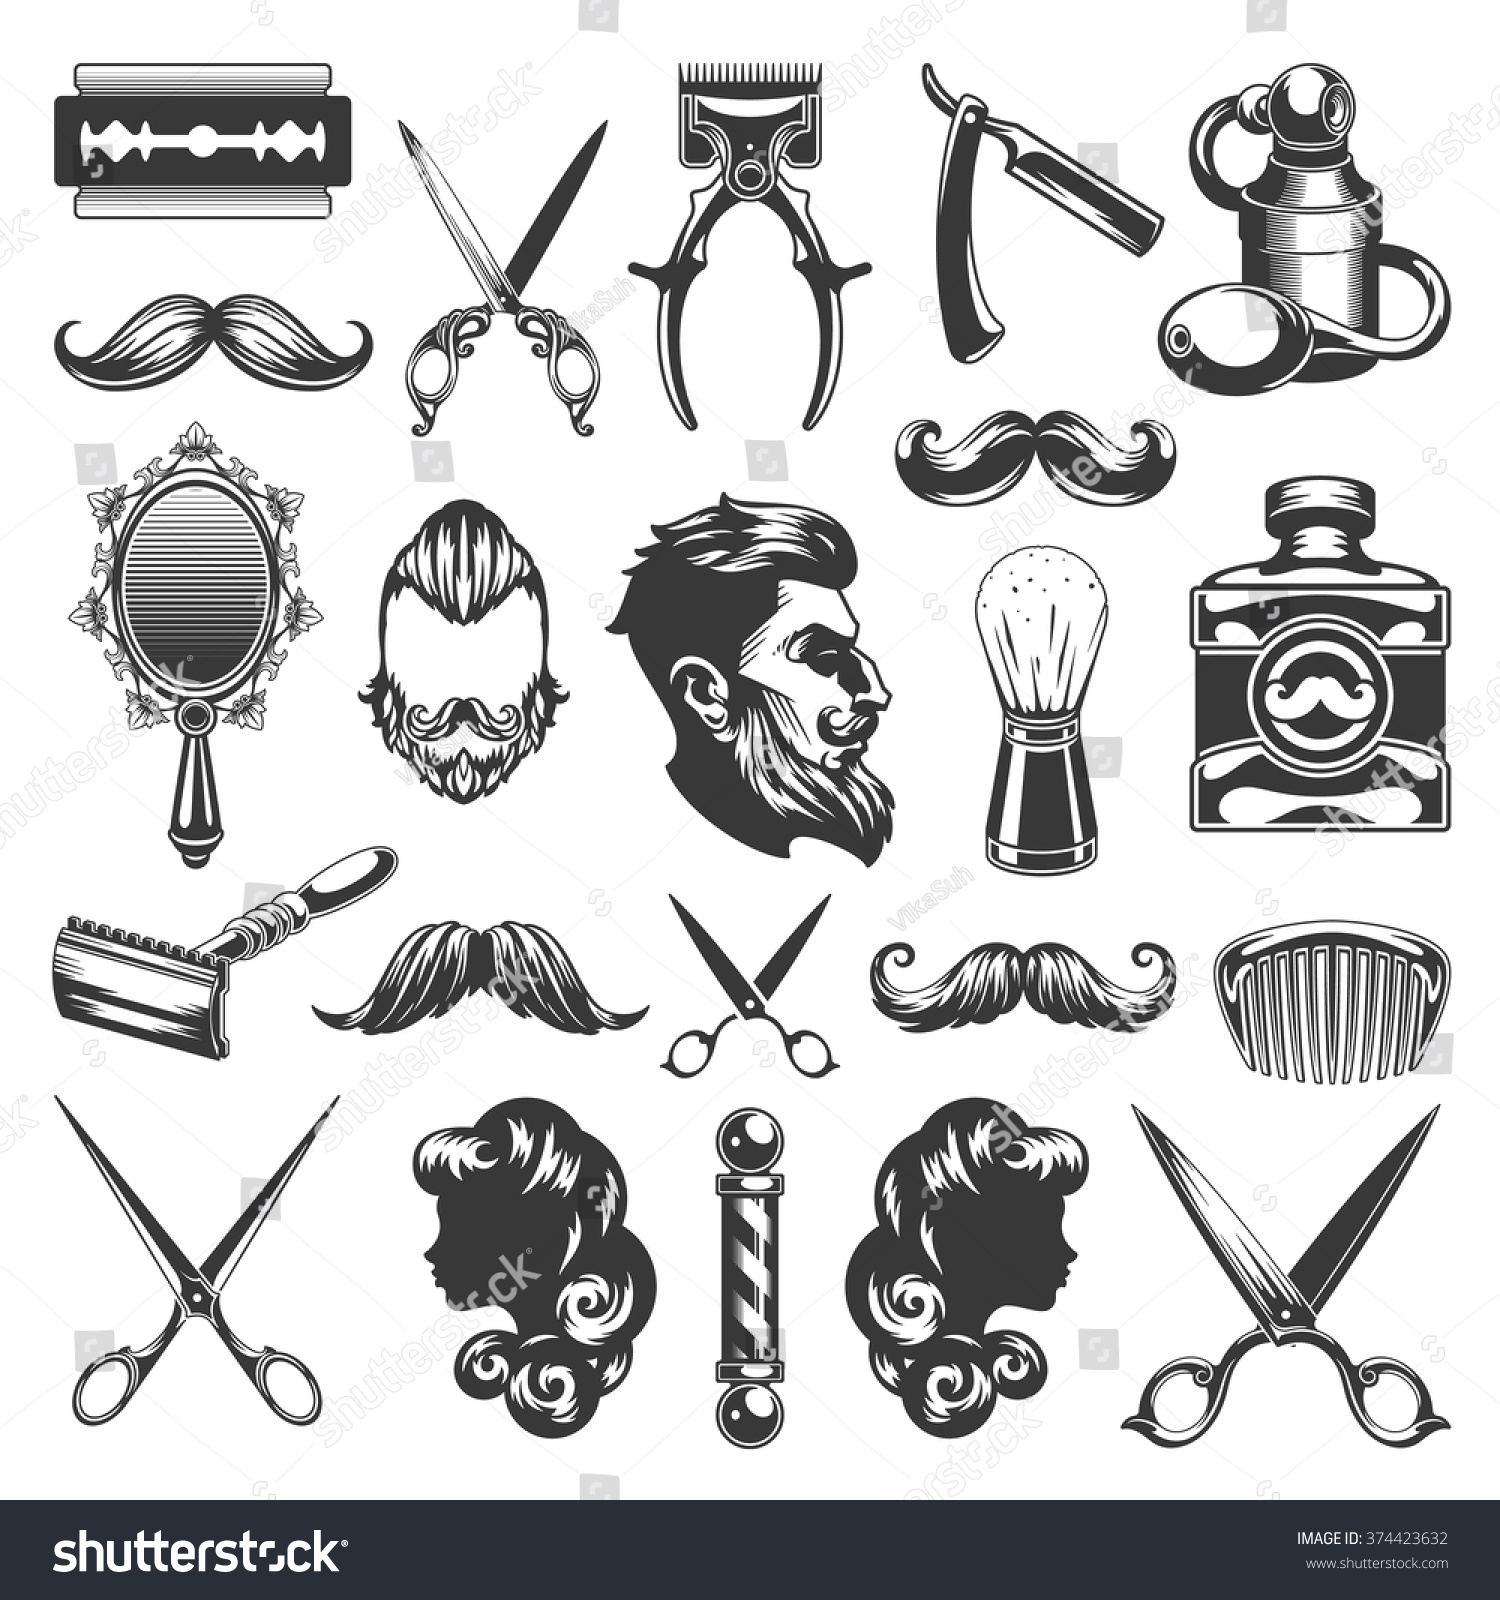 Barber Shop Vector Silhouettes Icons Set Stock Vector ...